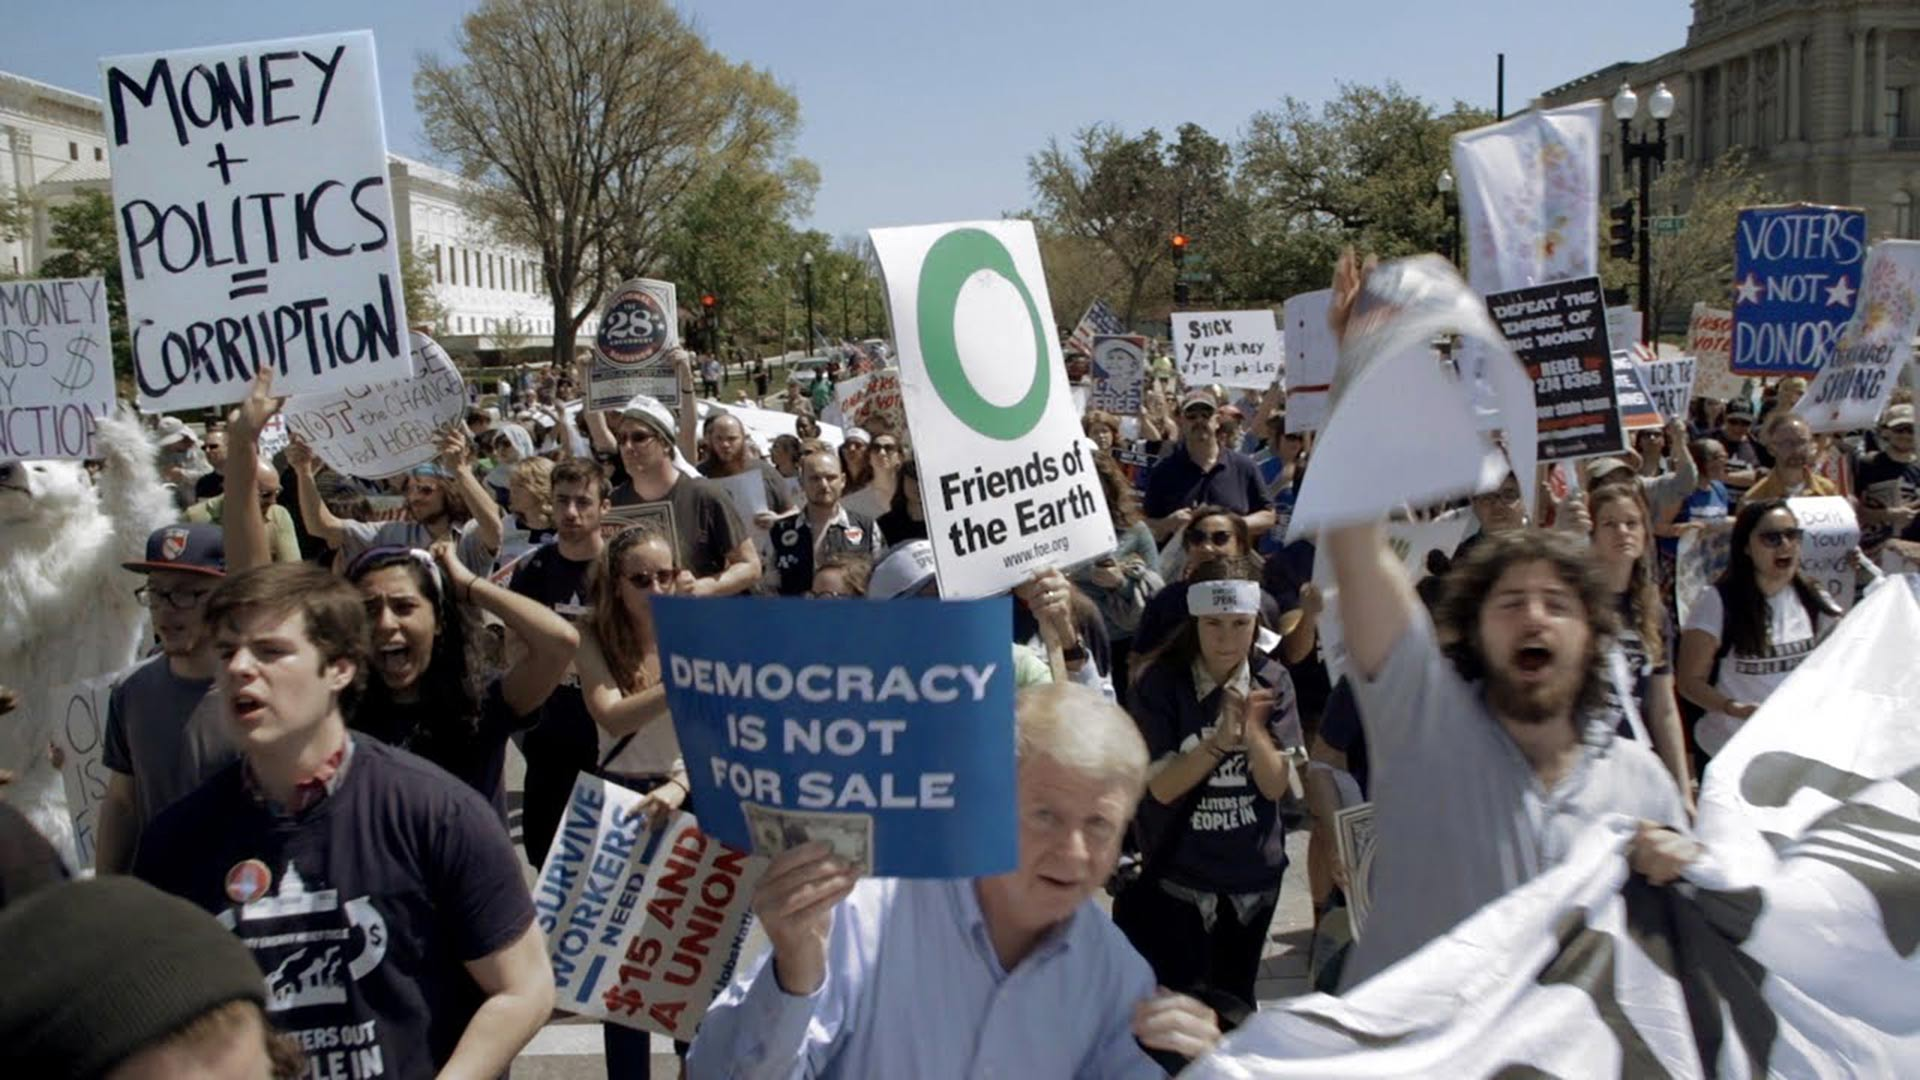 Protesters against dark money in Washington, D.C.